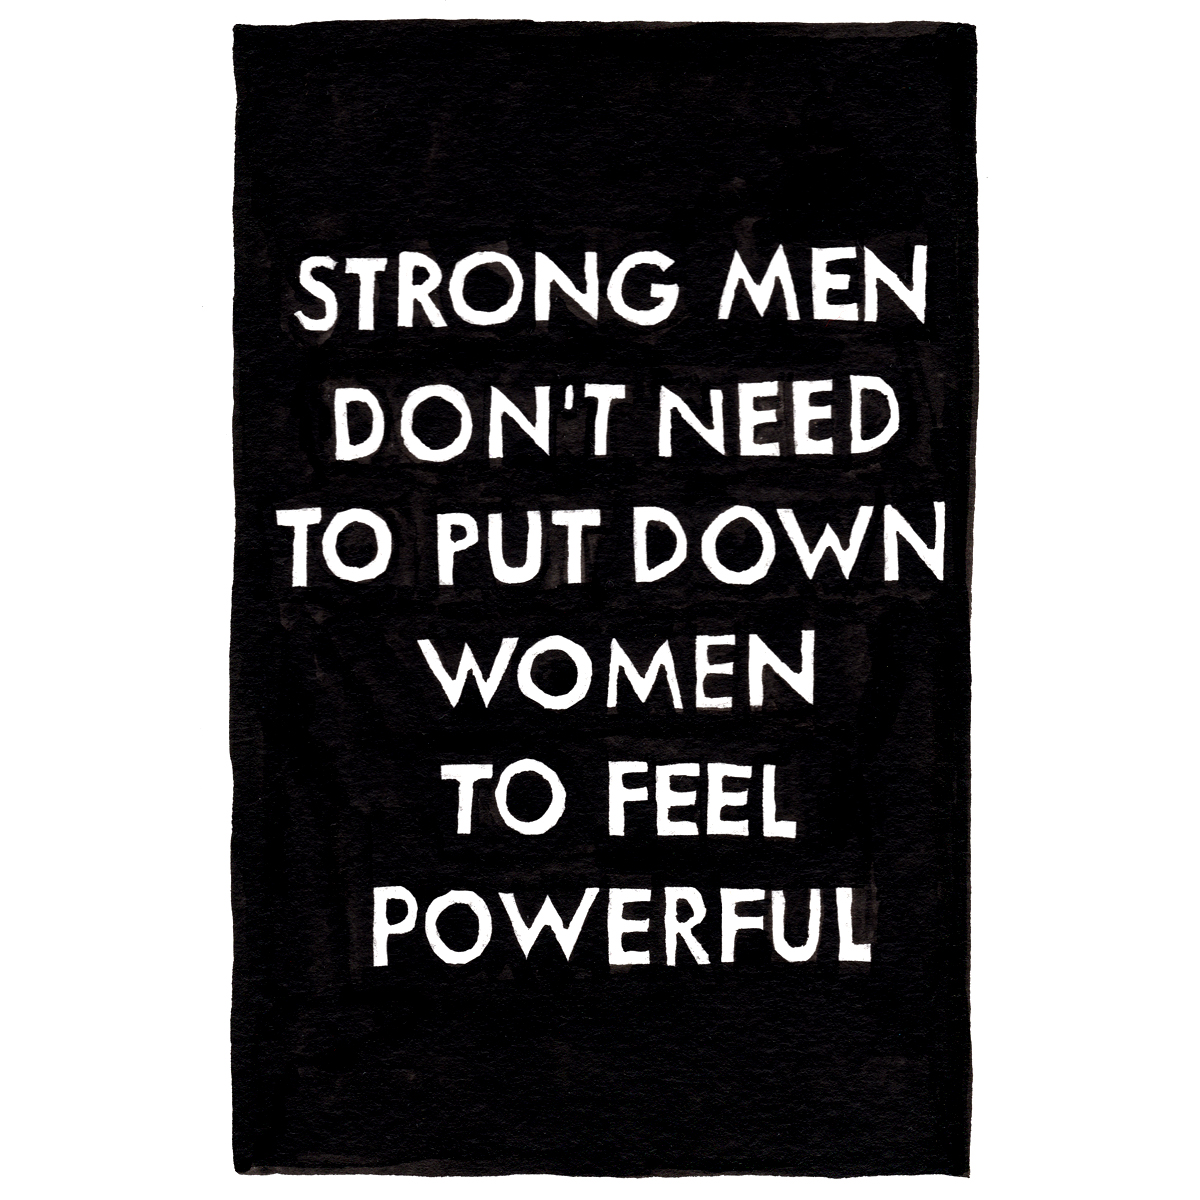 untitled. (strong men don't need to put down women to feel powerful)  2017  ink on paper postcard  6 x 4 in  unique variant of 5, +2 APs